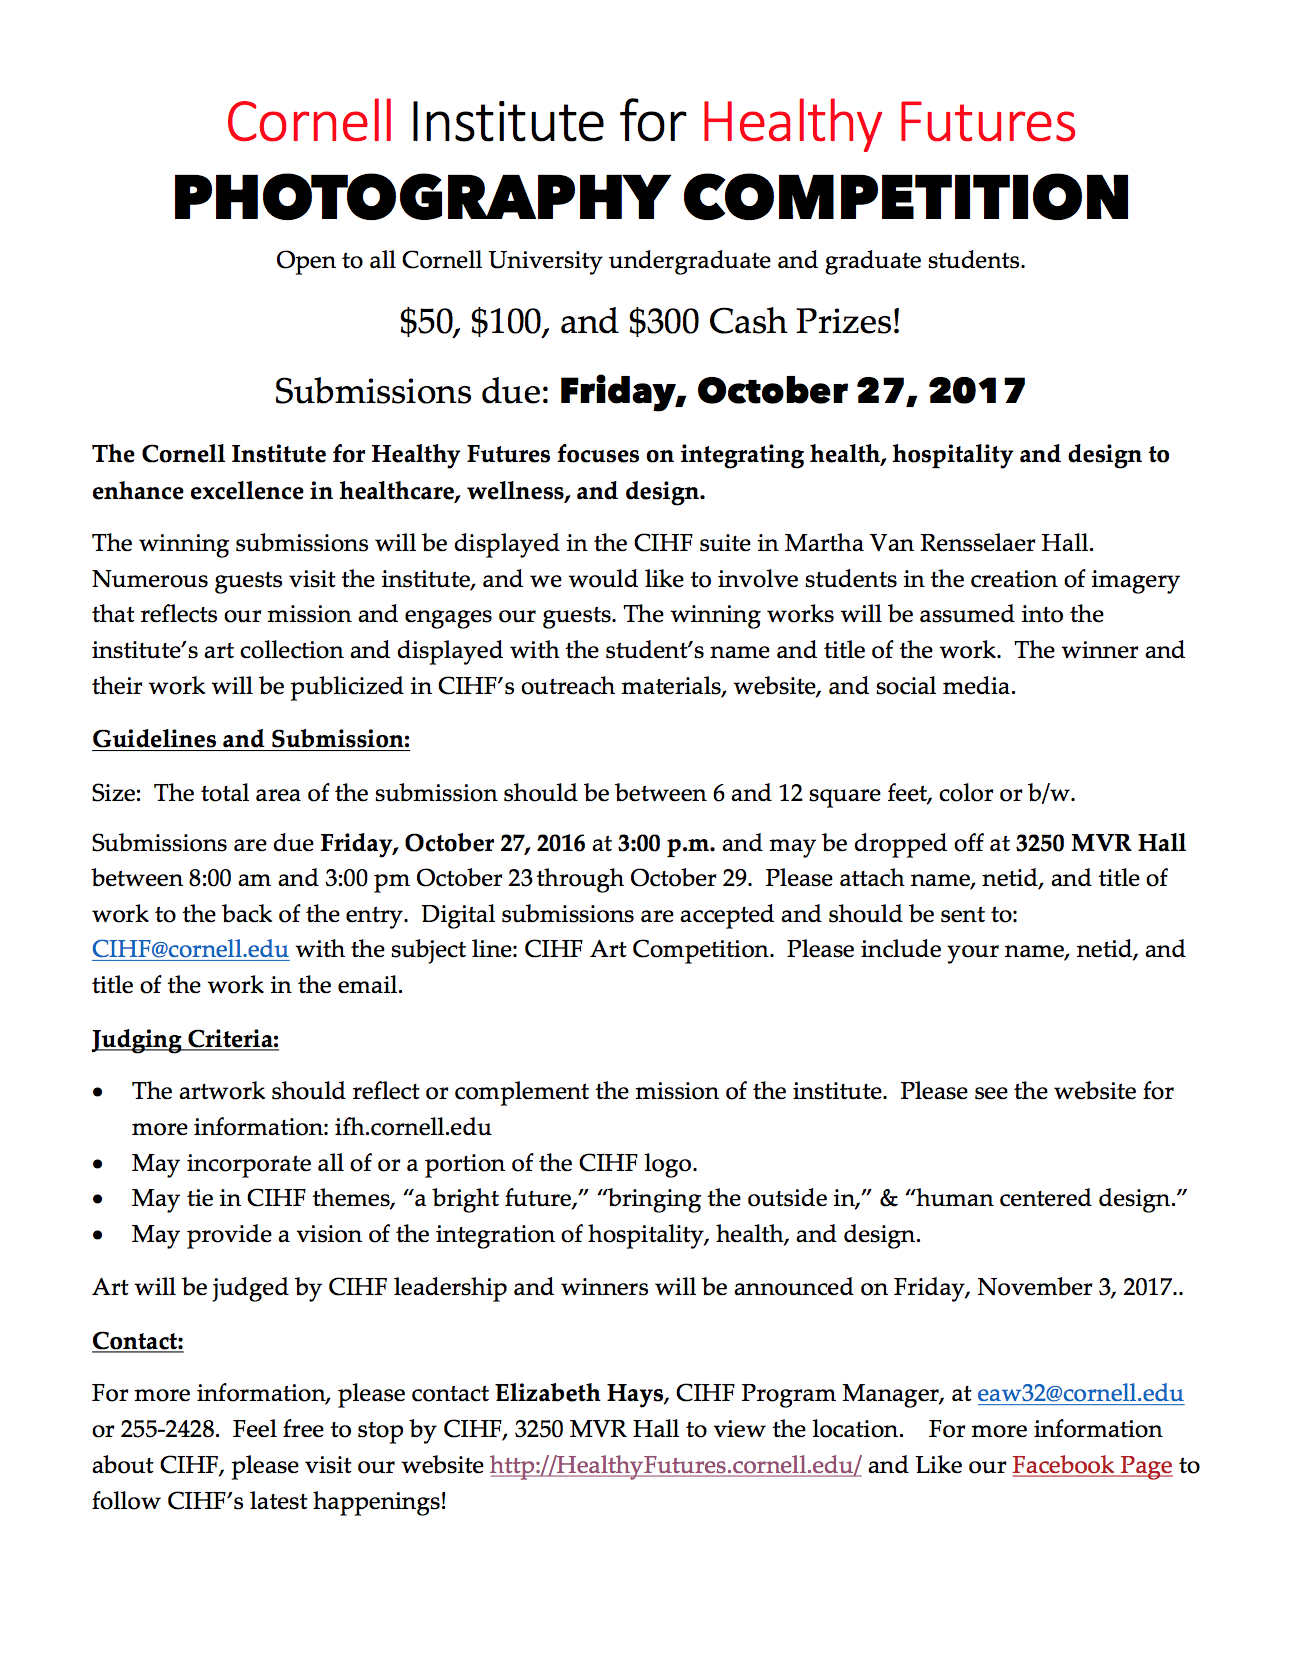 photo competition flyer